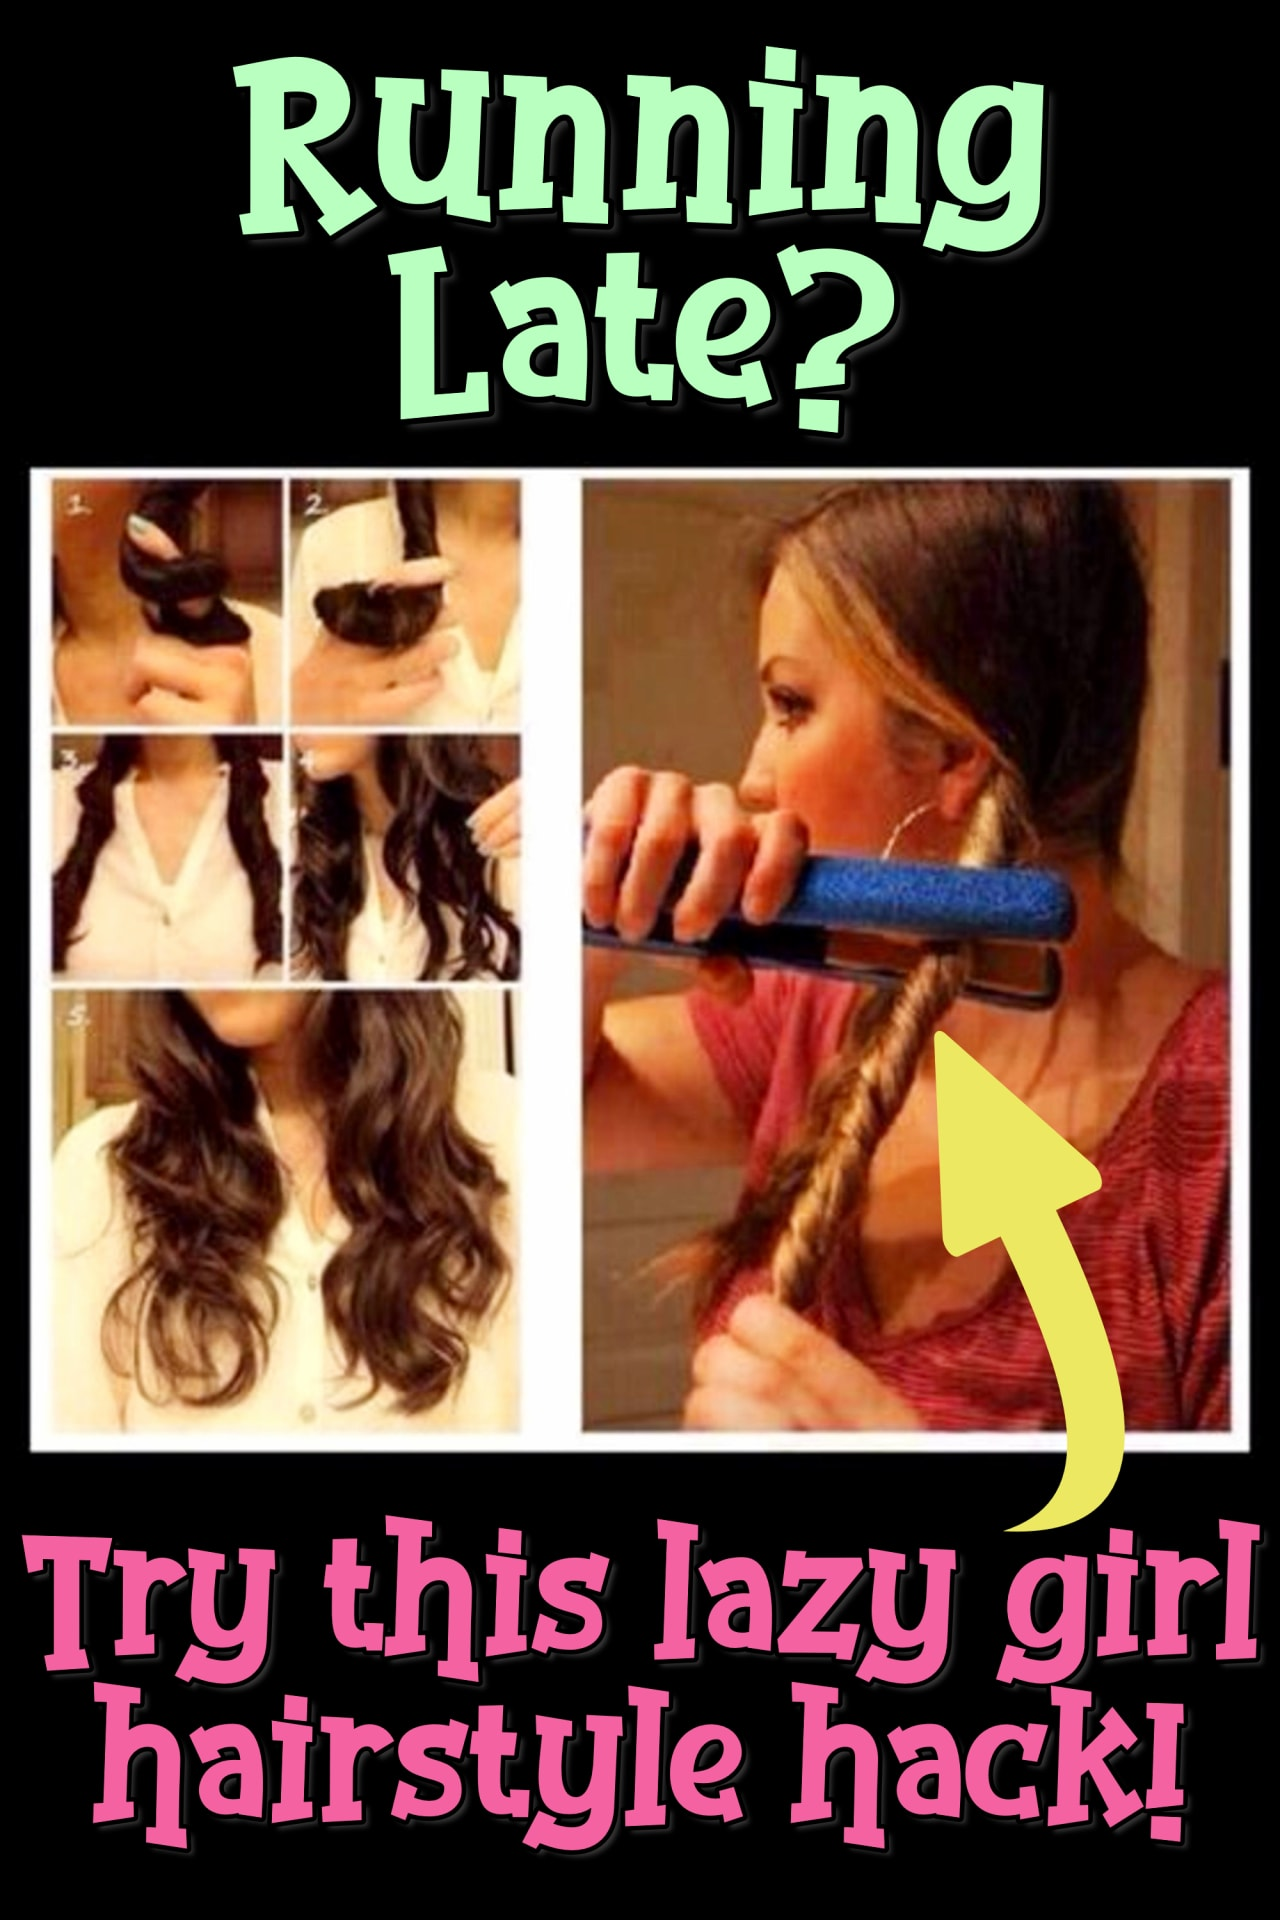 Lazy Hairstyle Hacks!  Hair Tricks and Tips for Running Late Lazy Girl Hairstyles in Minutes - lazy hairstyles tutorials for easy hairstyles in a rush